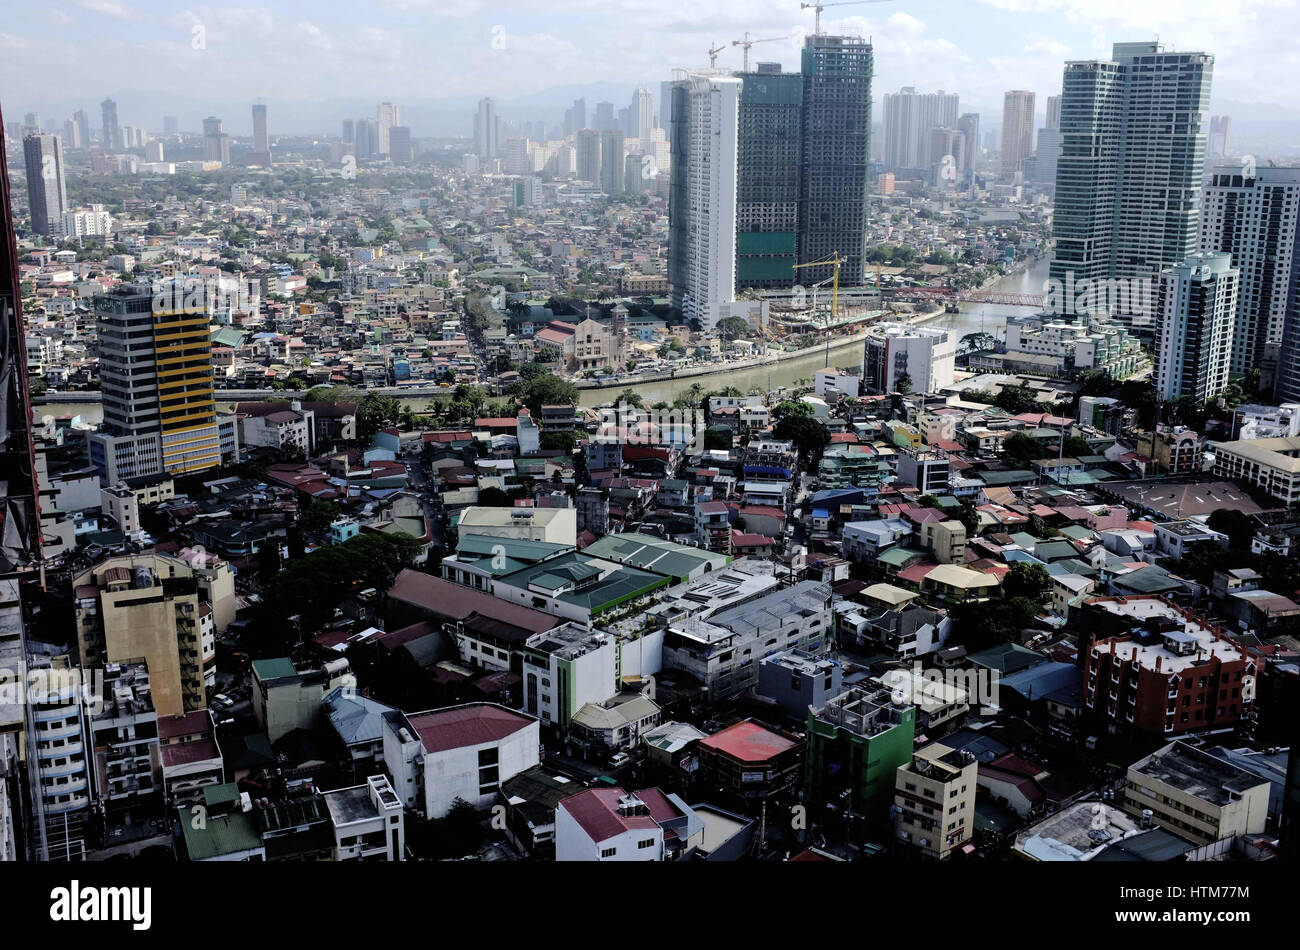 The skyline of Manila, the capital of the Philippines. - Stock Image